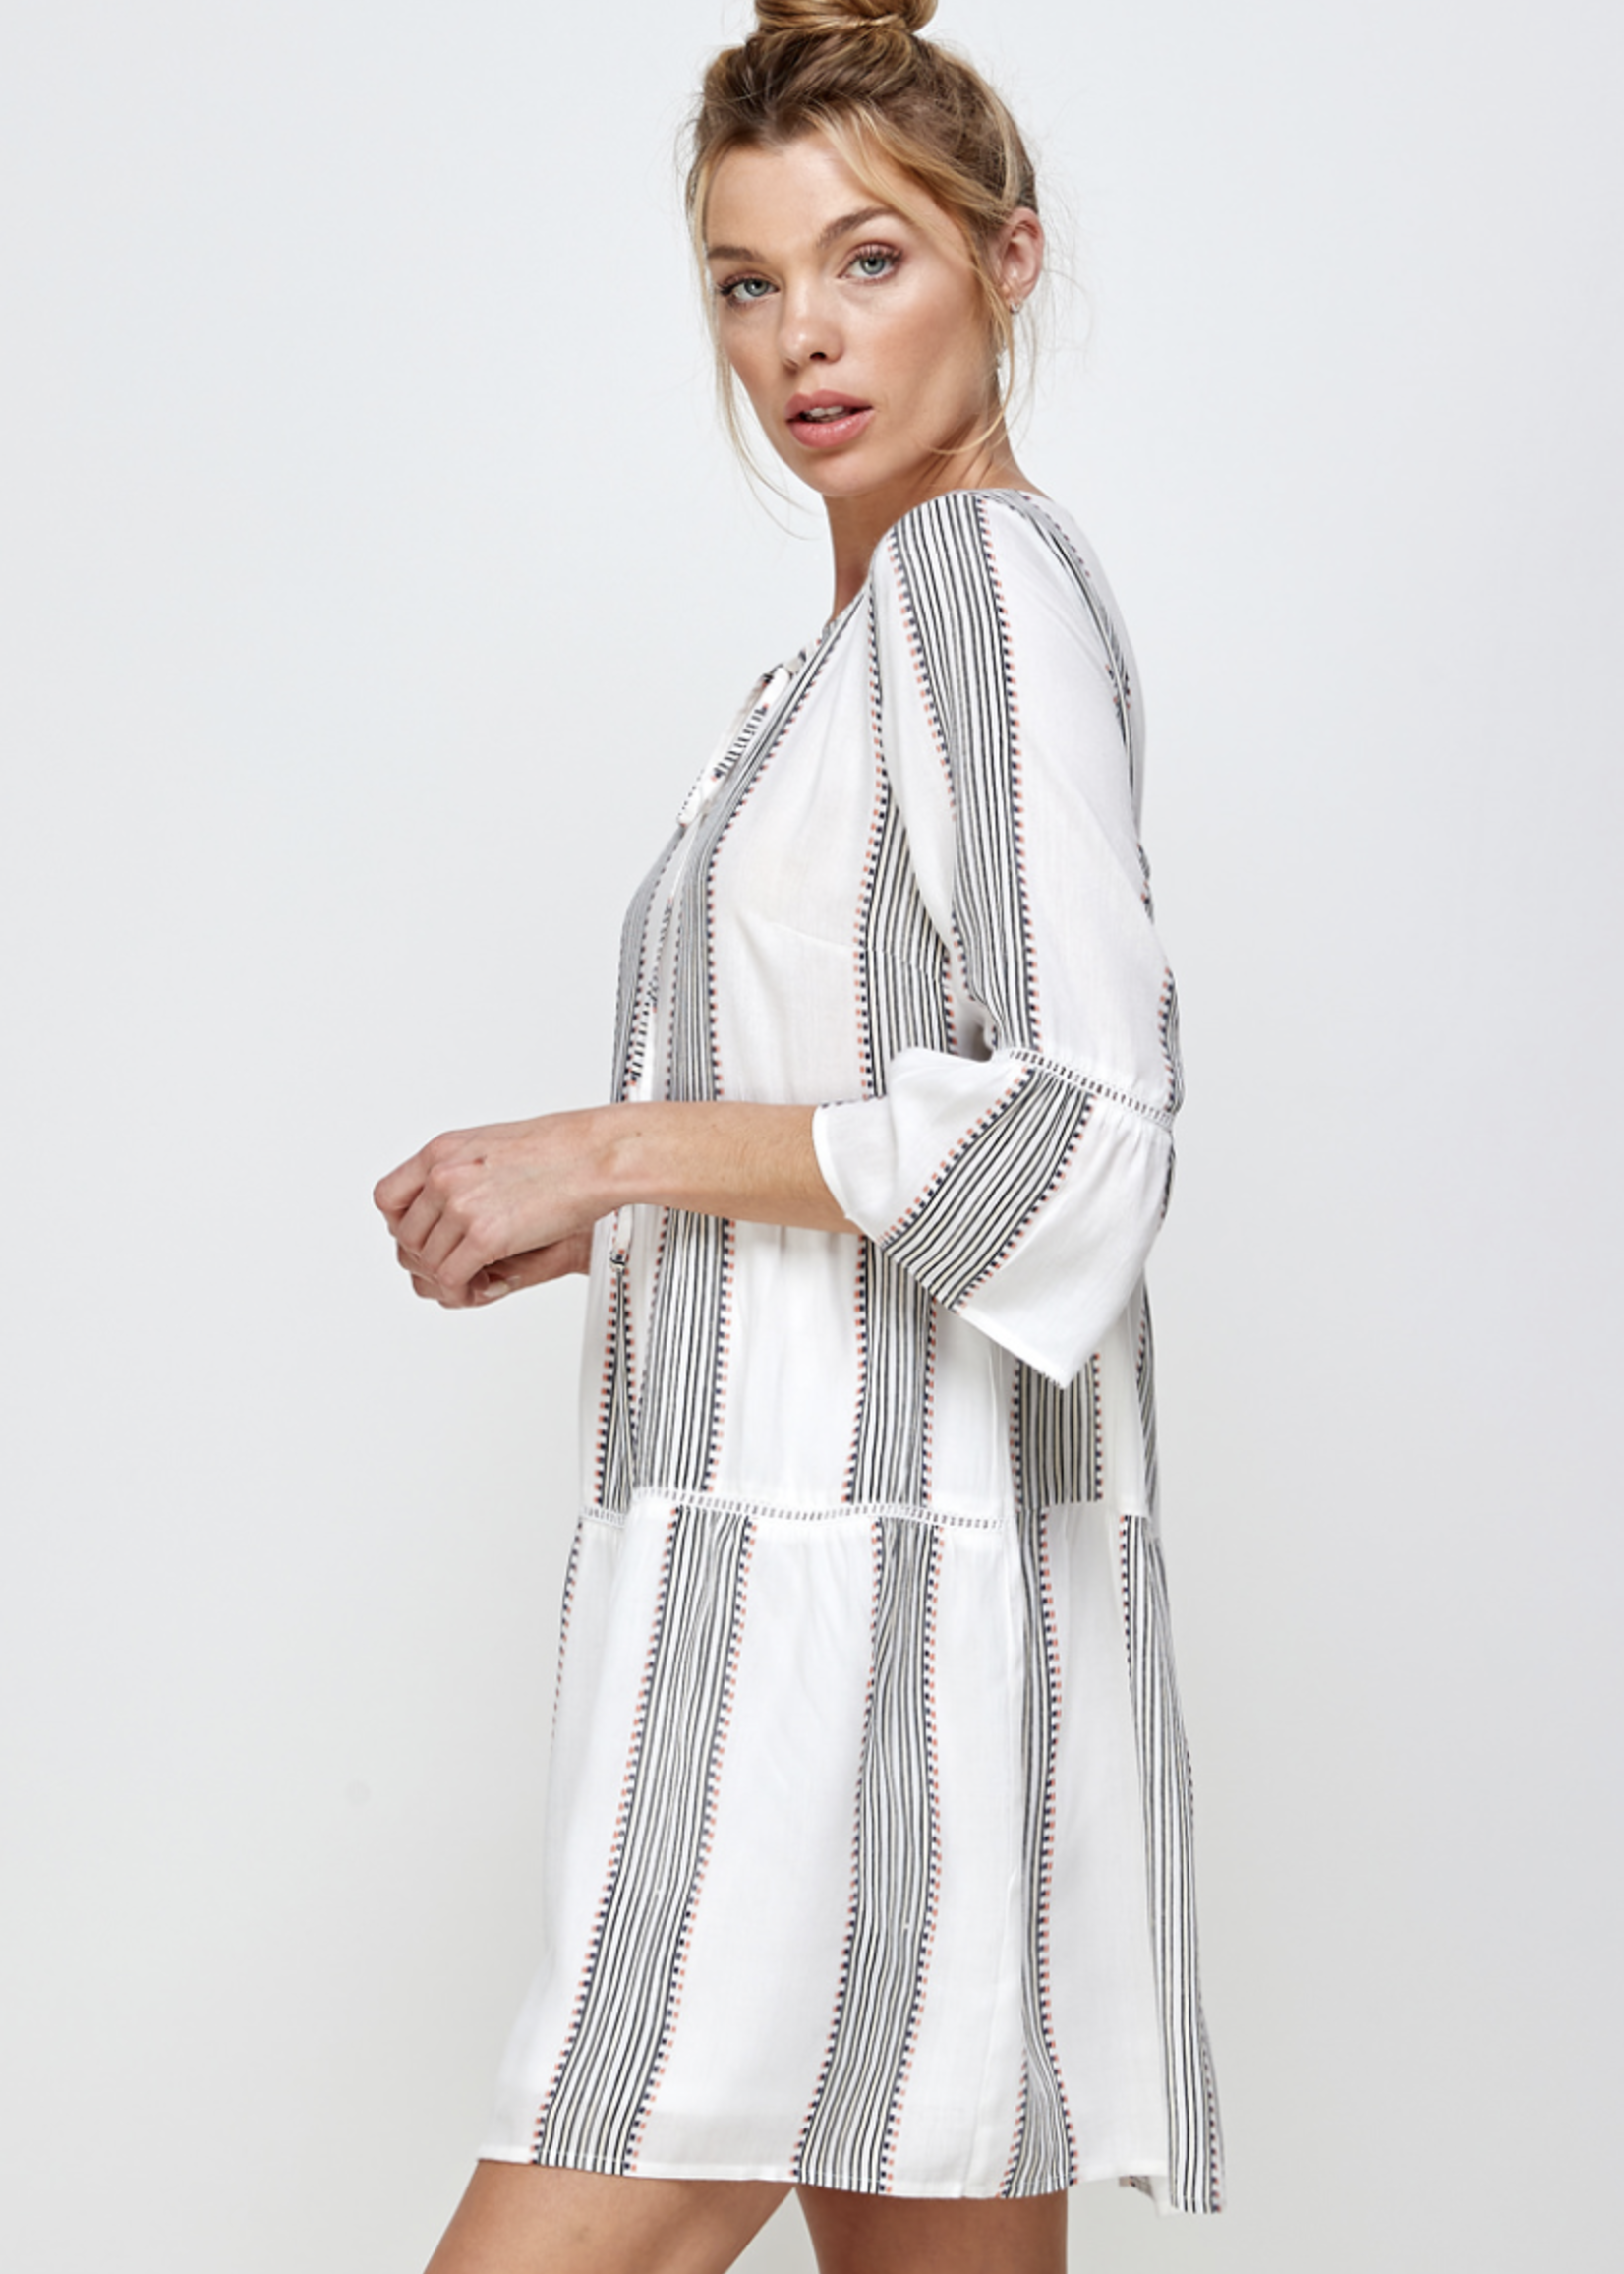 En Creme En Creme Striped Ruffle Dress